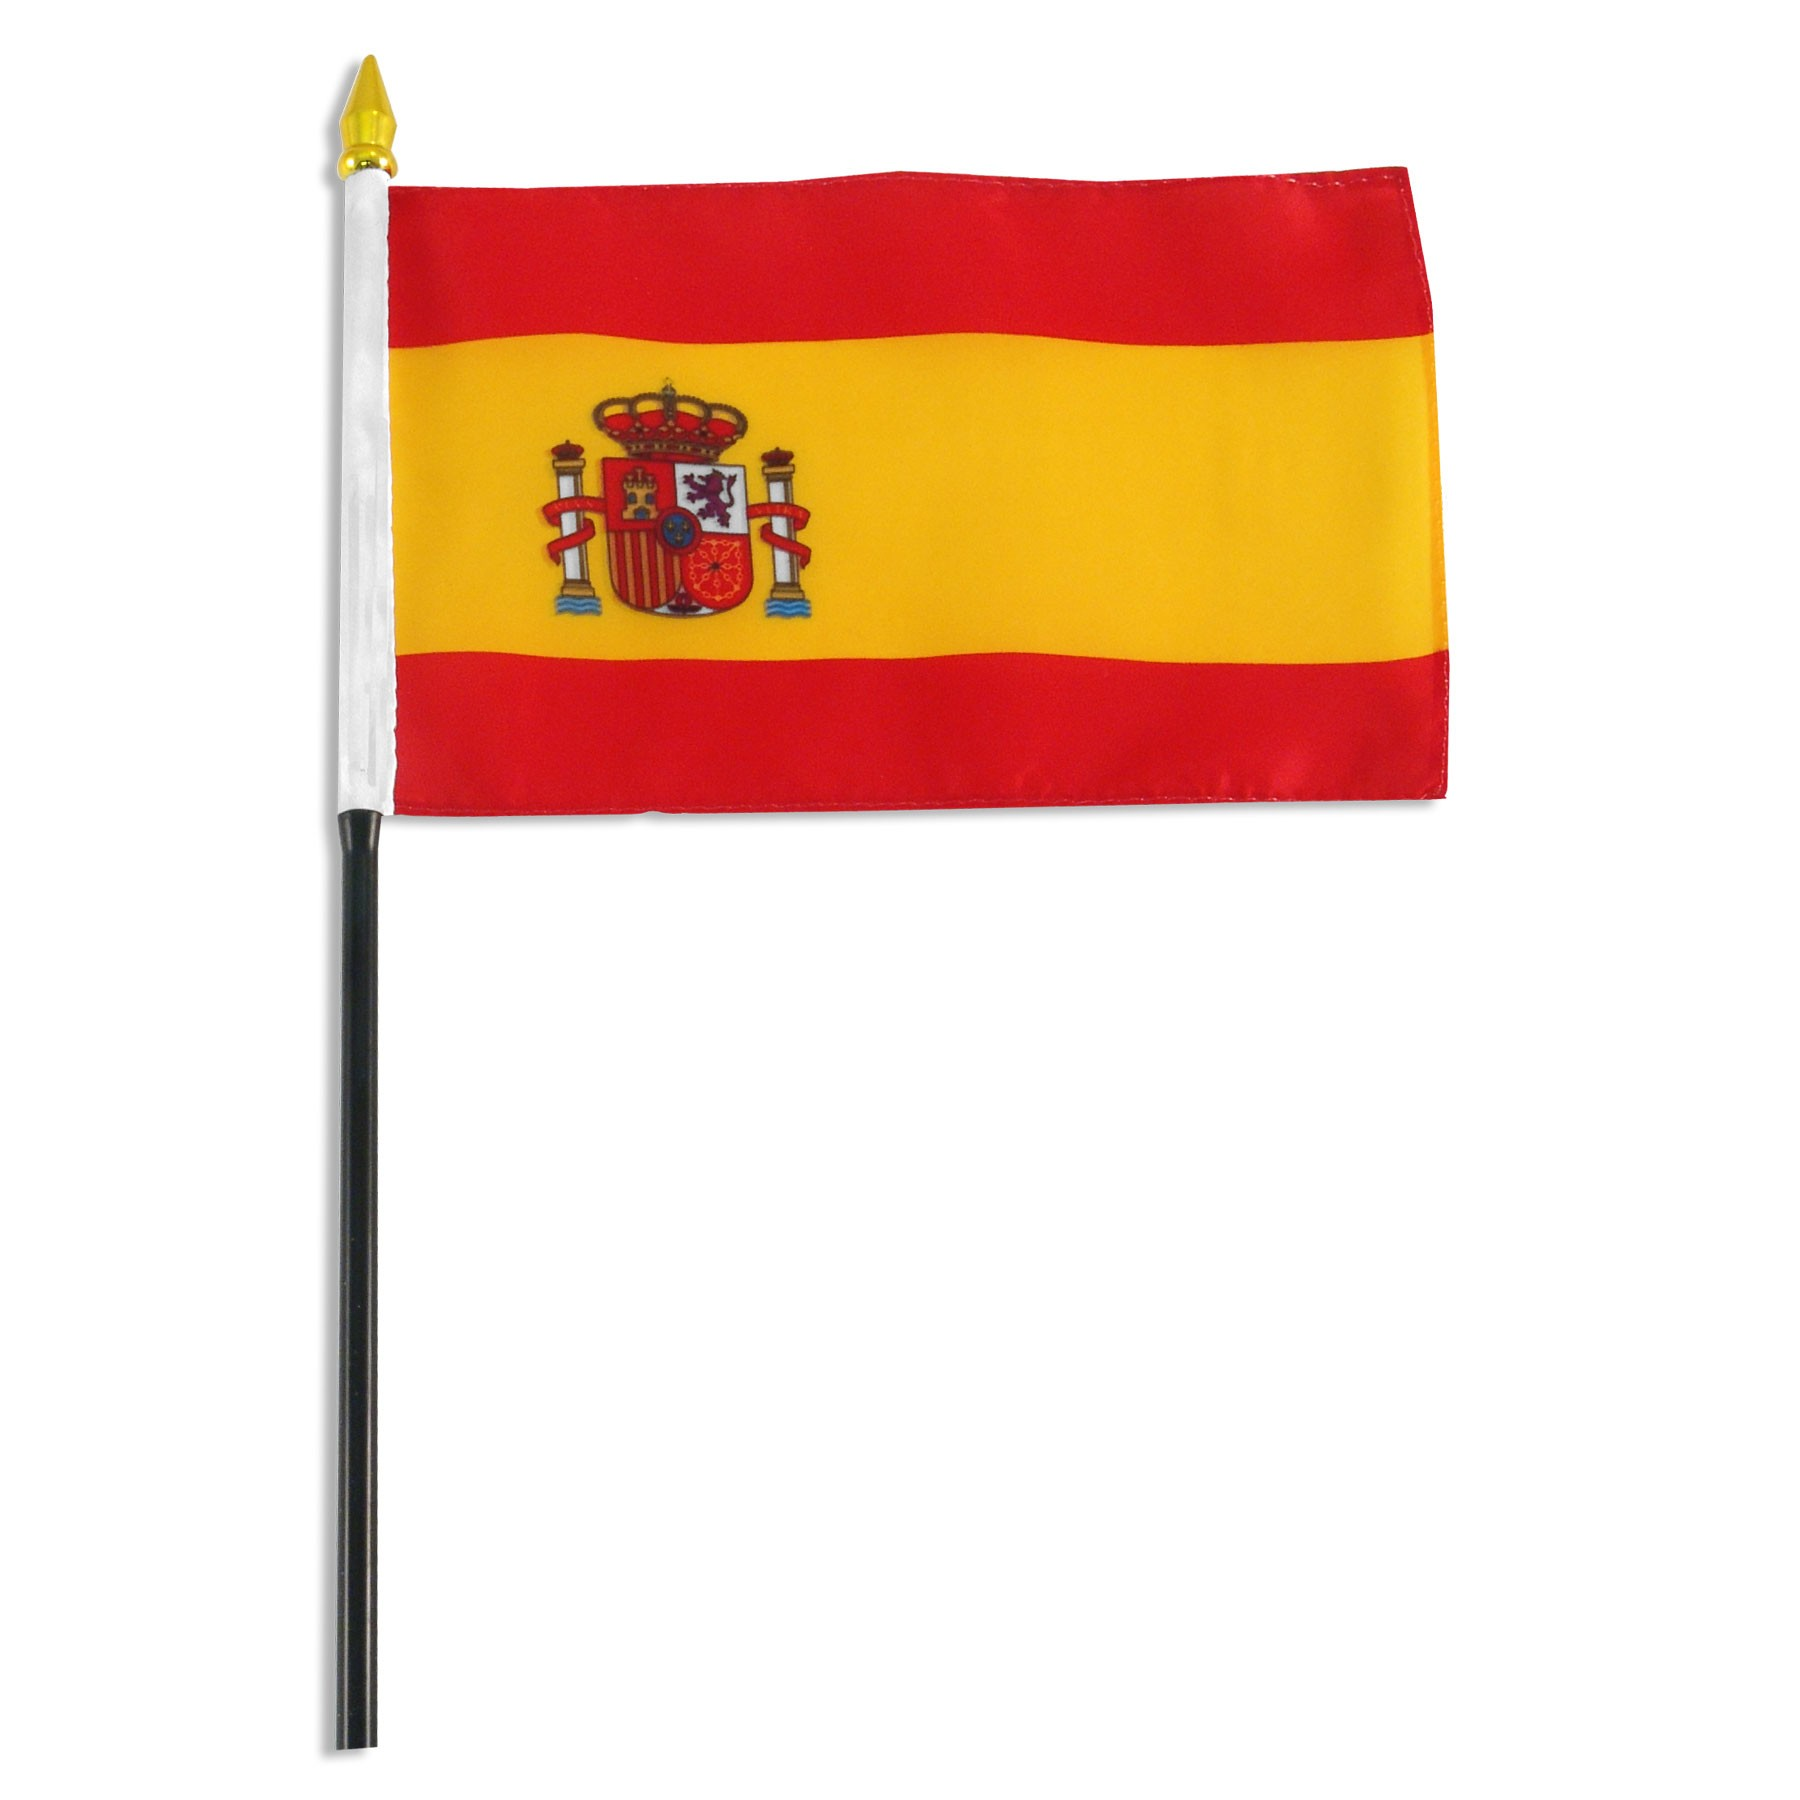 Spanish flag clipart 3 » Clipart Station.